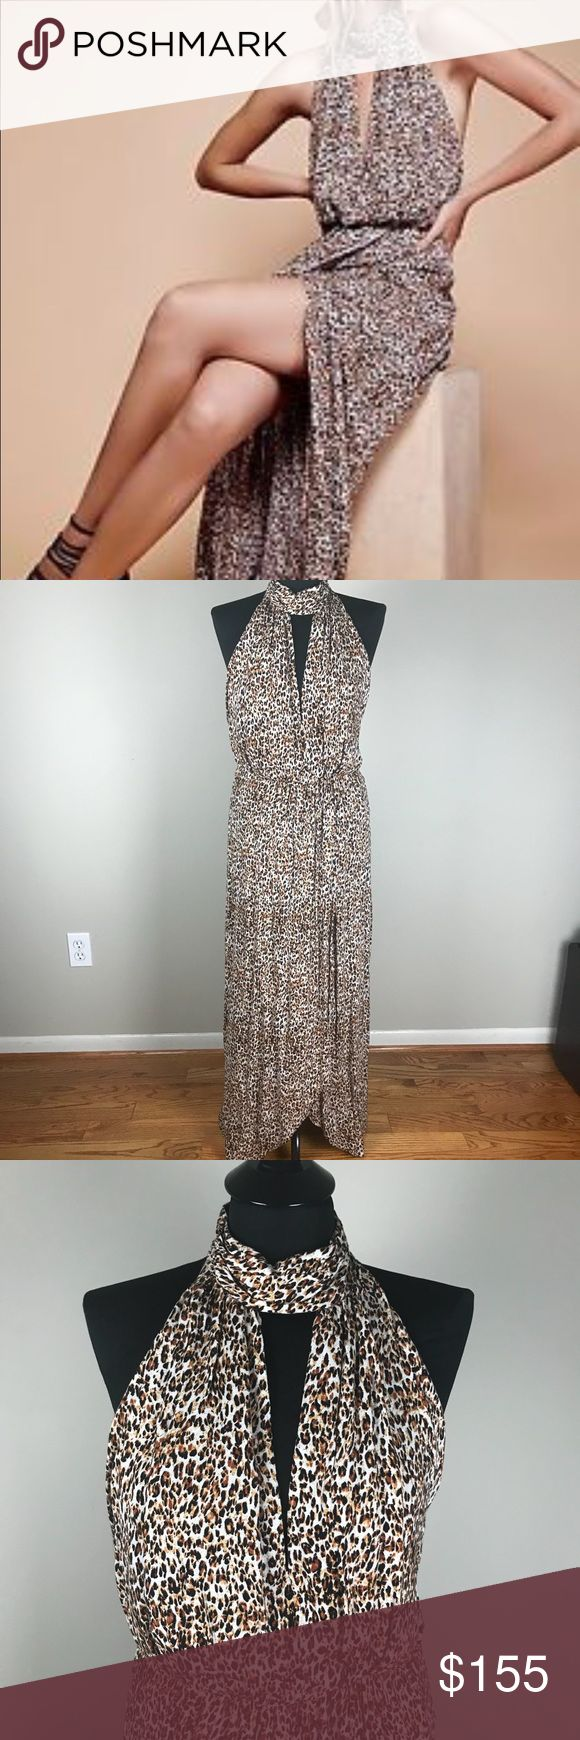 Free People Leopard Maxi Dress NWT New with tags long maxi dress in Leopard material by Free People. Modeled on standard size 6 mannequin. Free People Dresses Maxi